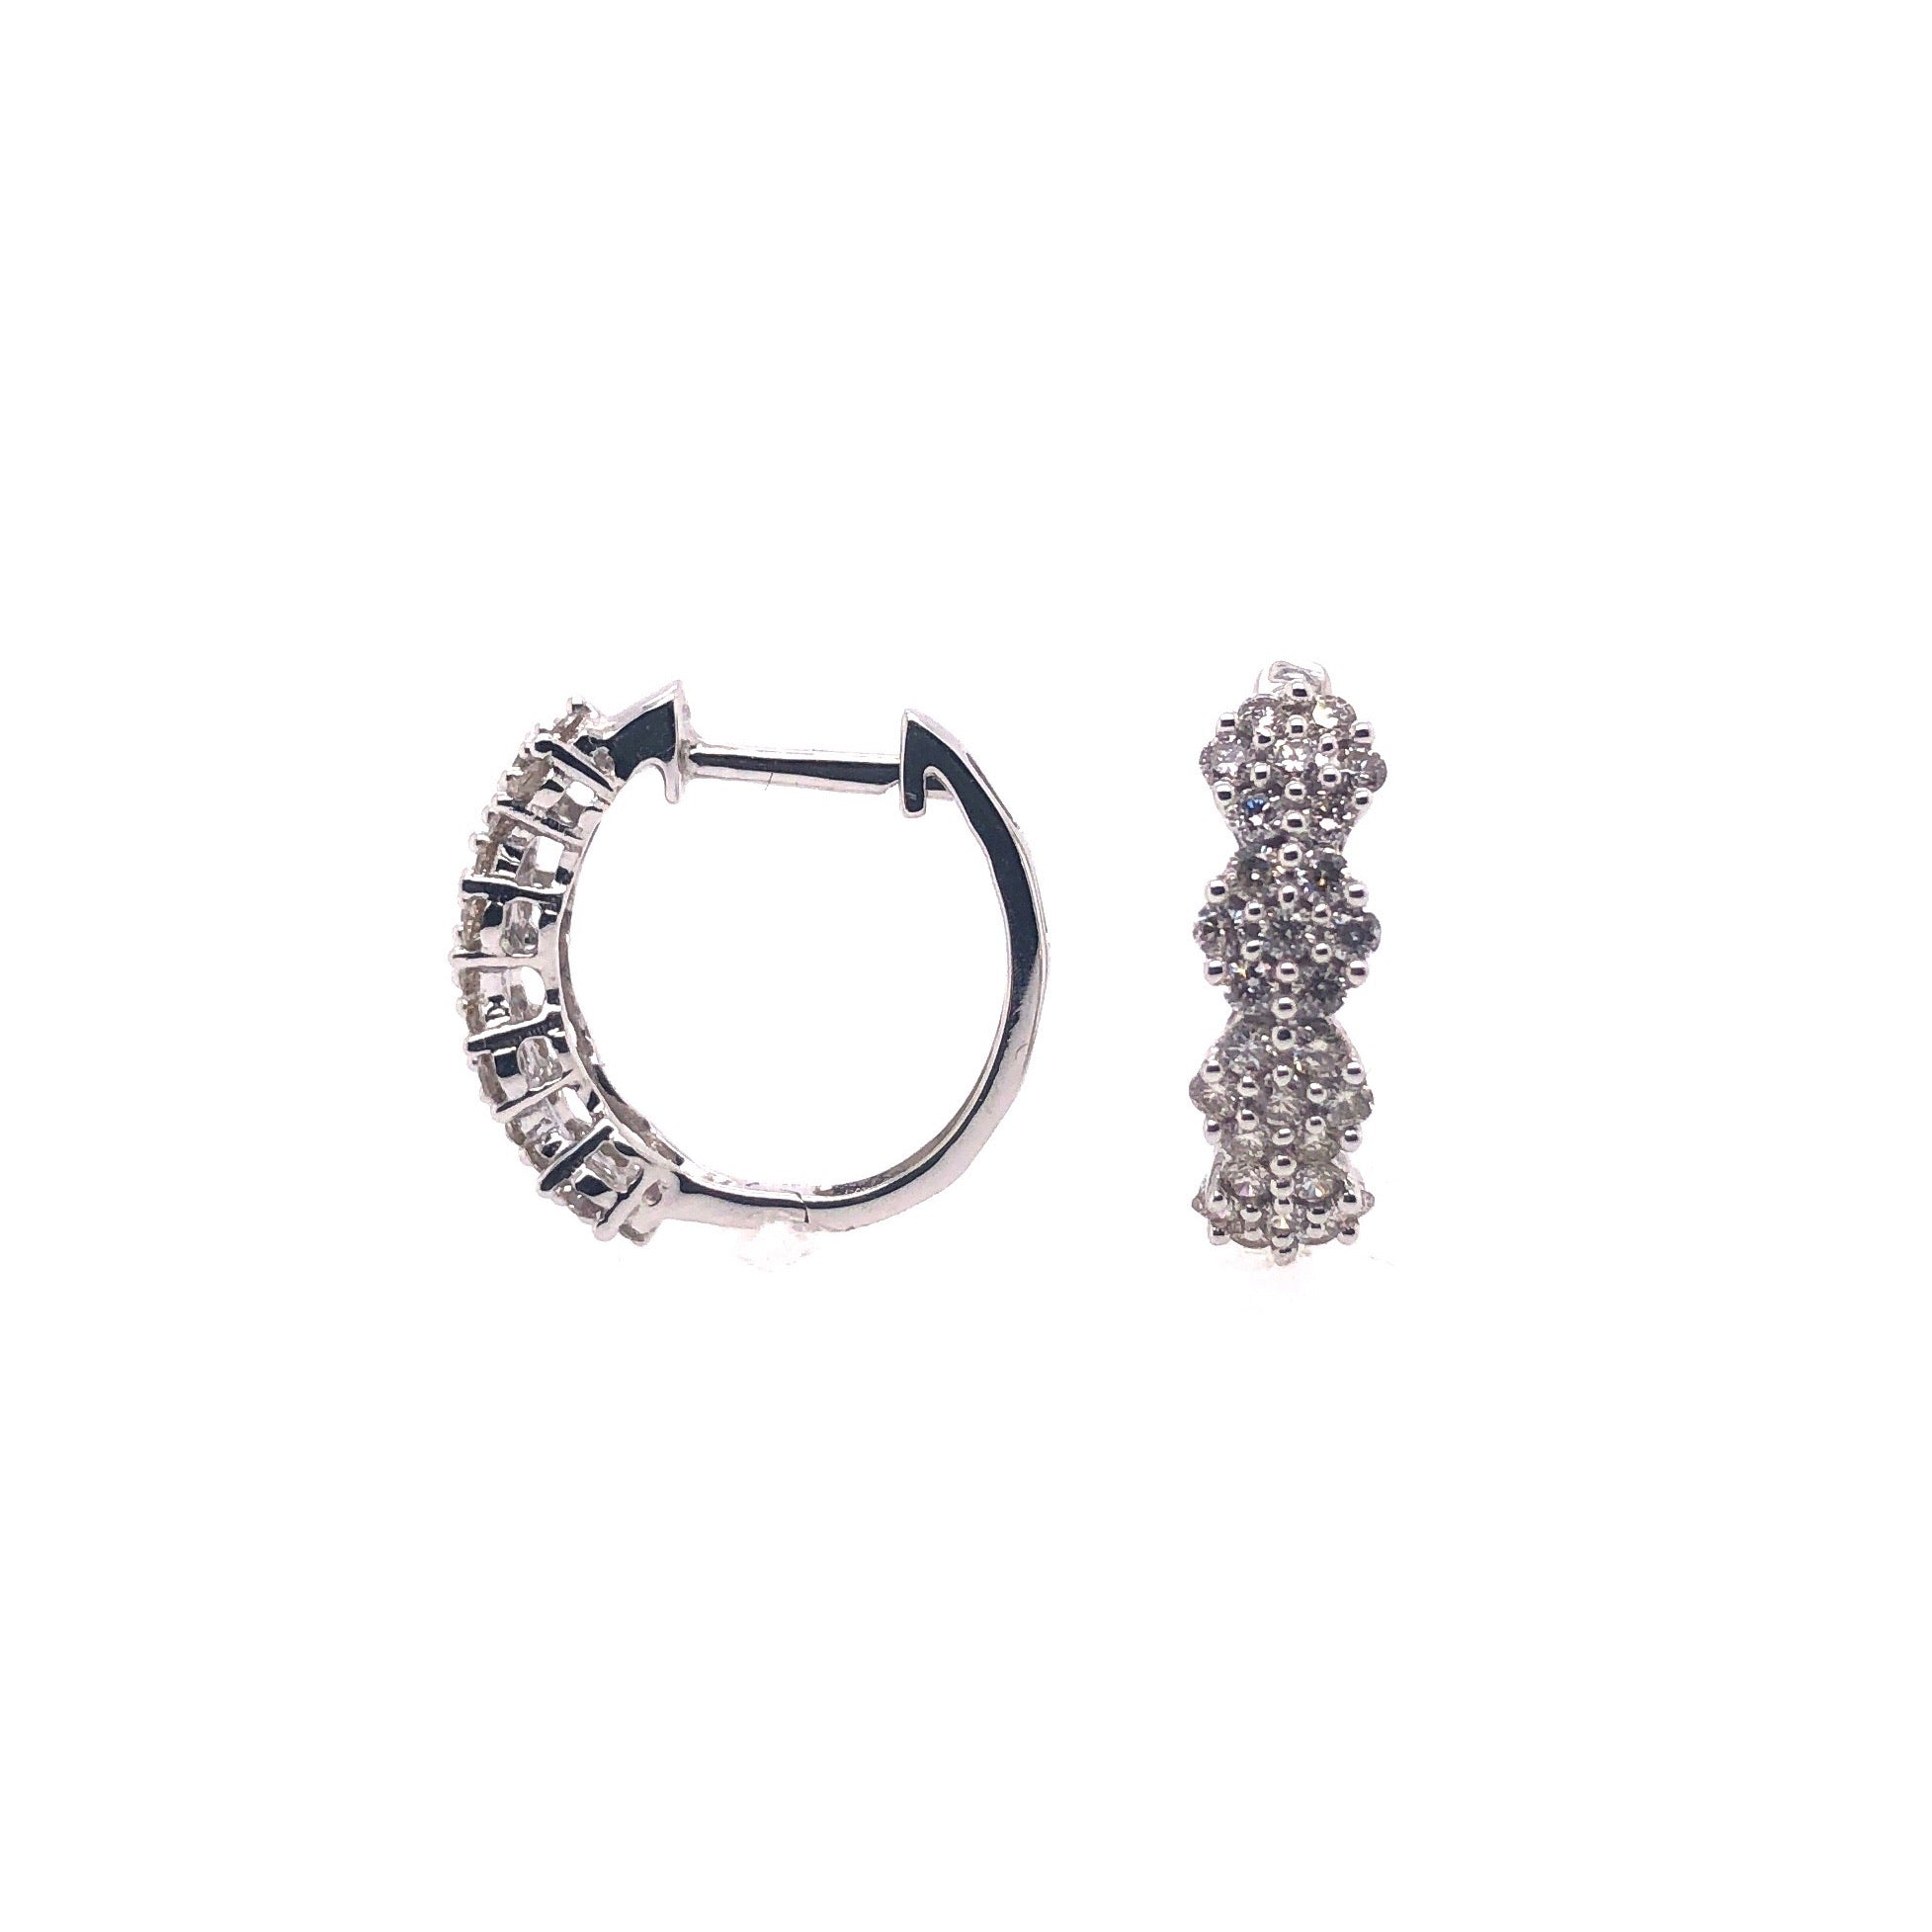 4 Flower Diamond Hoop